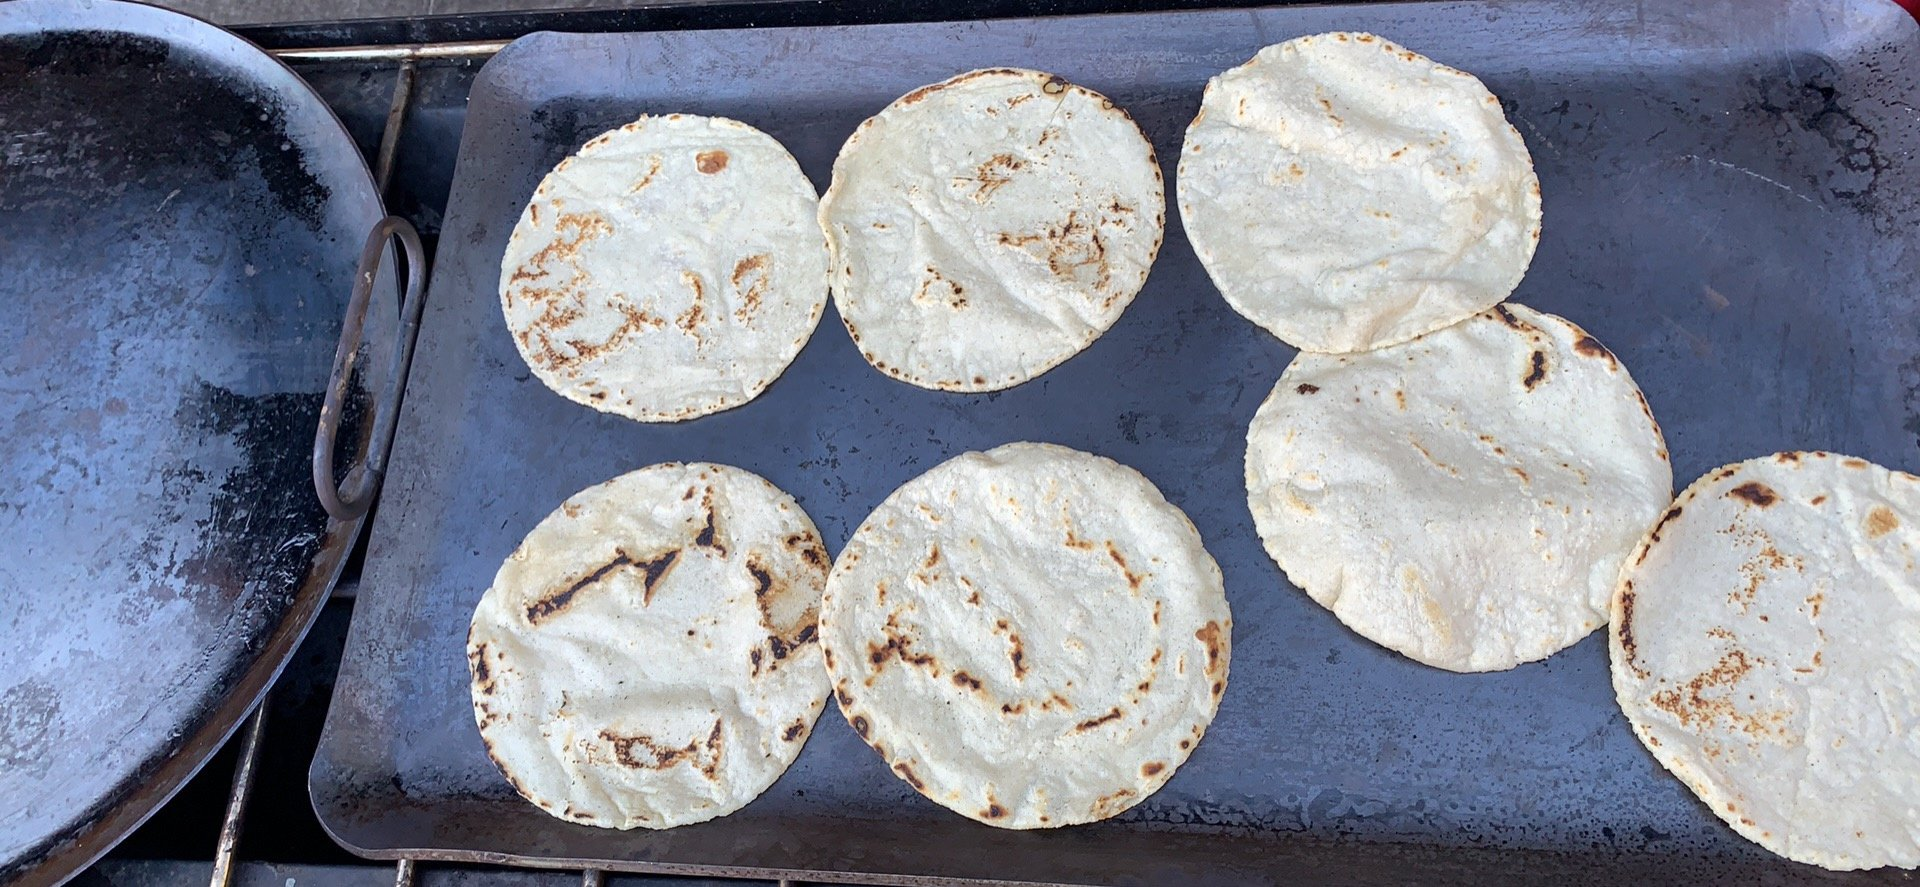 https://0201.nccdn.net/4_2/000/000/056/7dc/Home_made_tortilla-1920x887.jpg